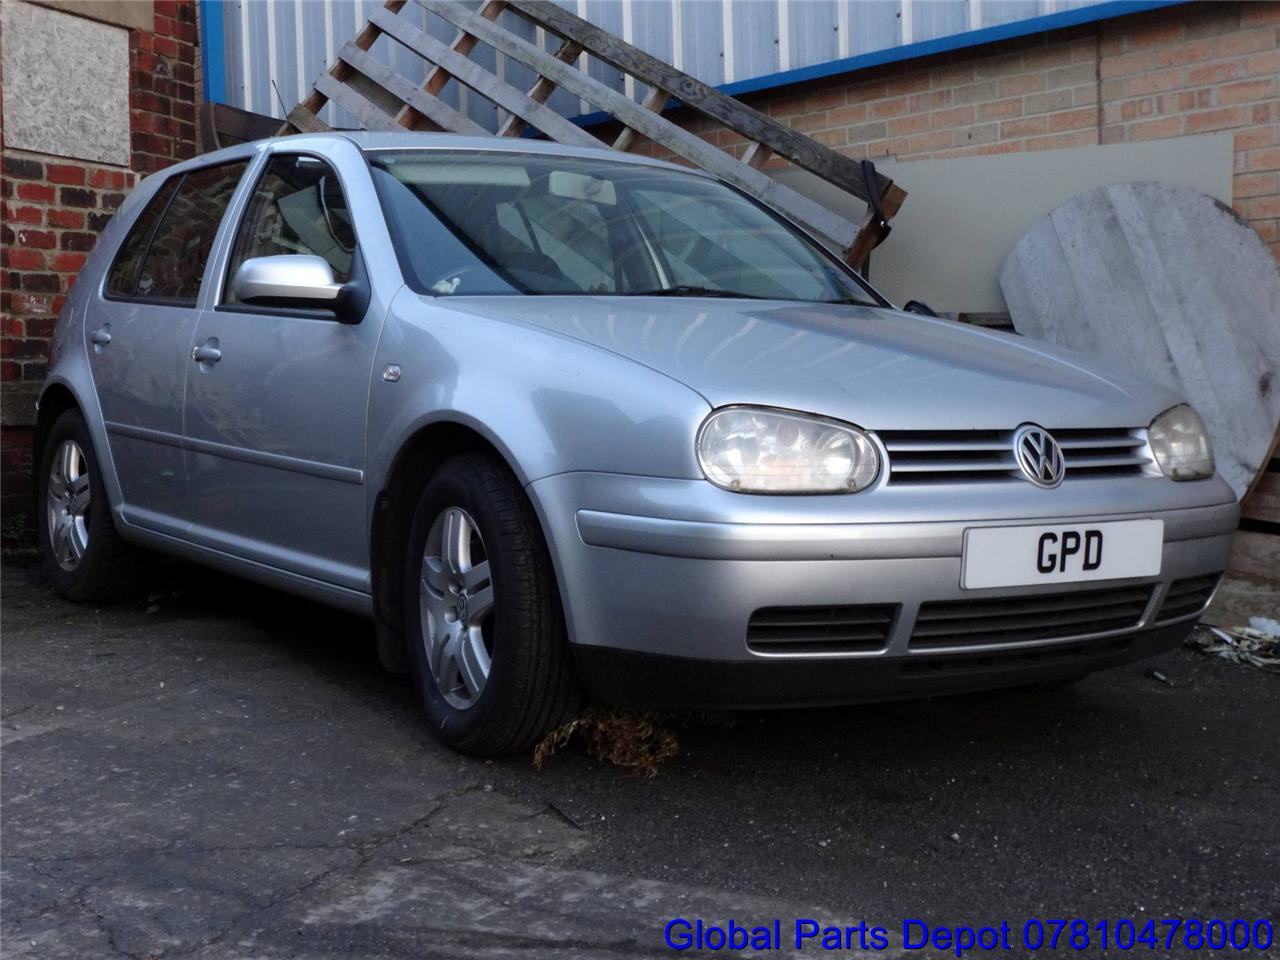 vw golf iv mk4 gt tdi 115 bhp silver 10 amp breaking fuse spare parts front end ebay. Black Bedroom Furniture Sets. Home Design Ideas